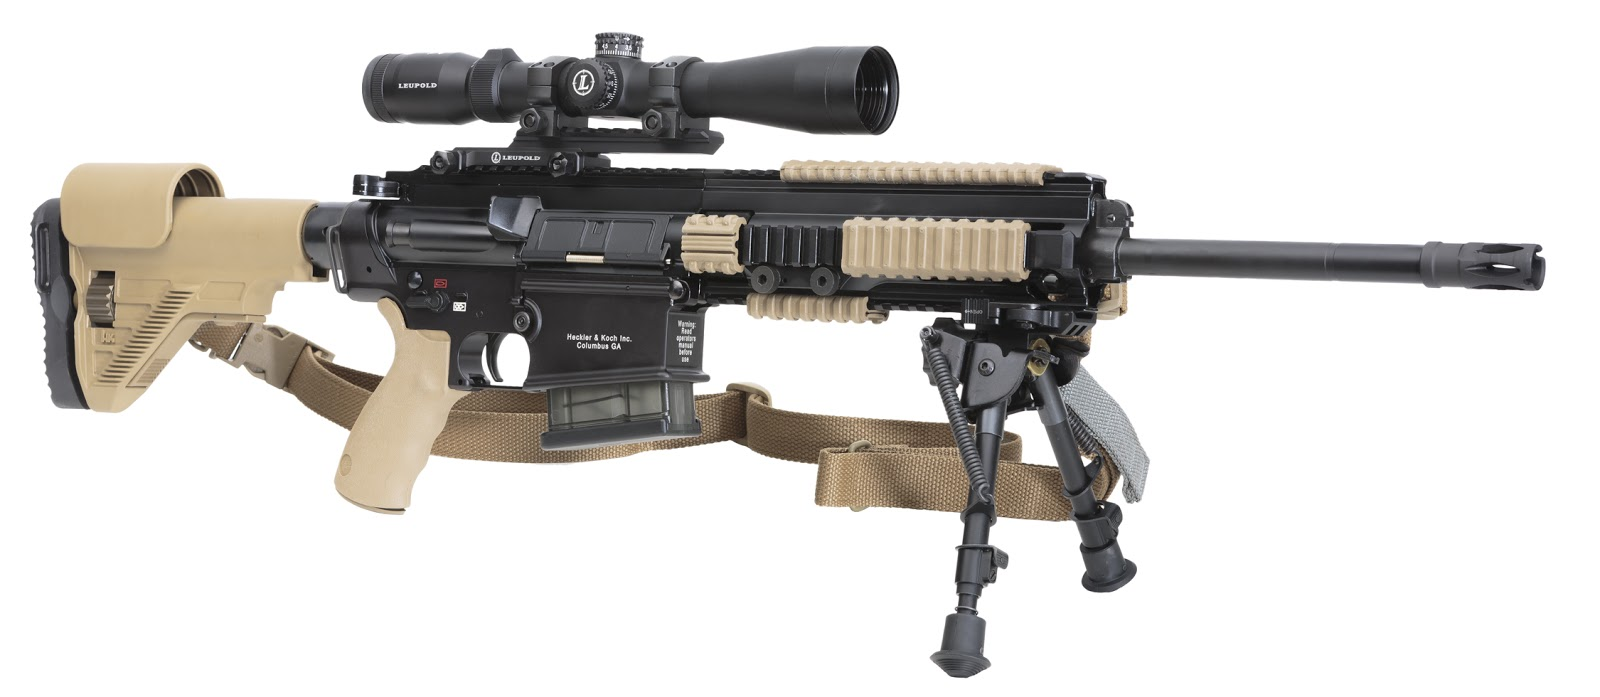 Welcome To Shottimes Net Hk Mr762a1 Lrp Long Rifle